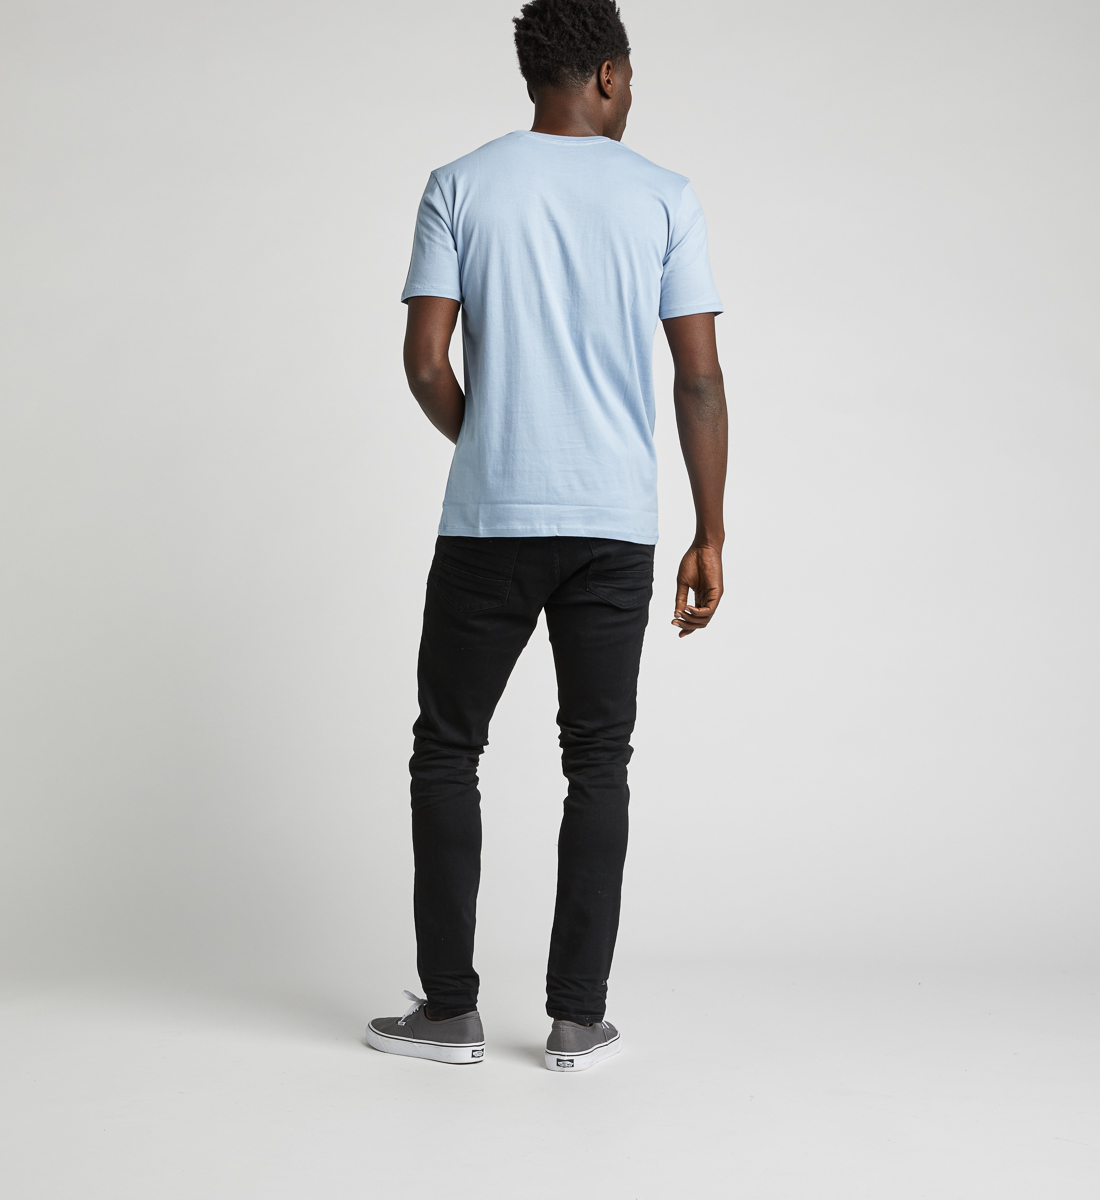 Dalian Graphic Tee,Light Blue Side